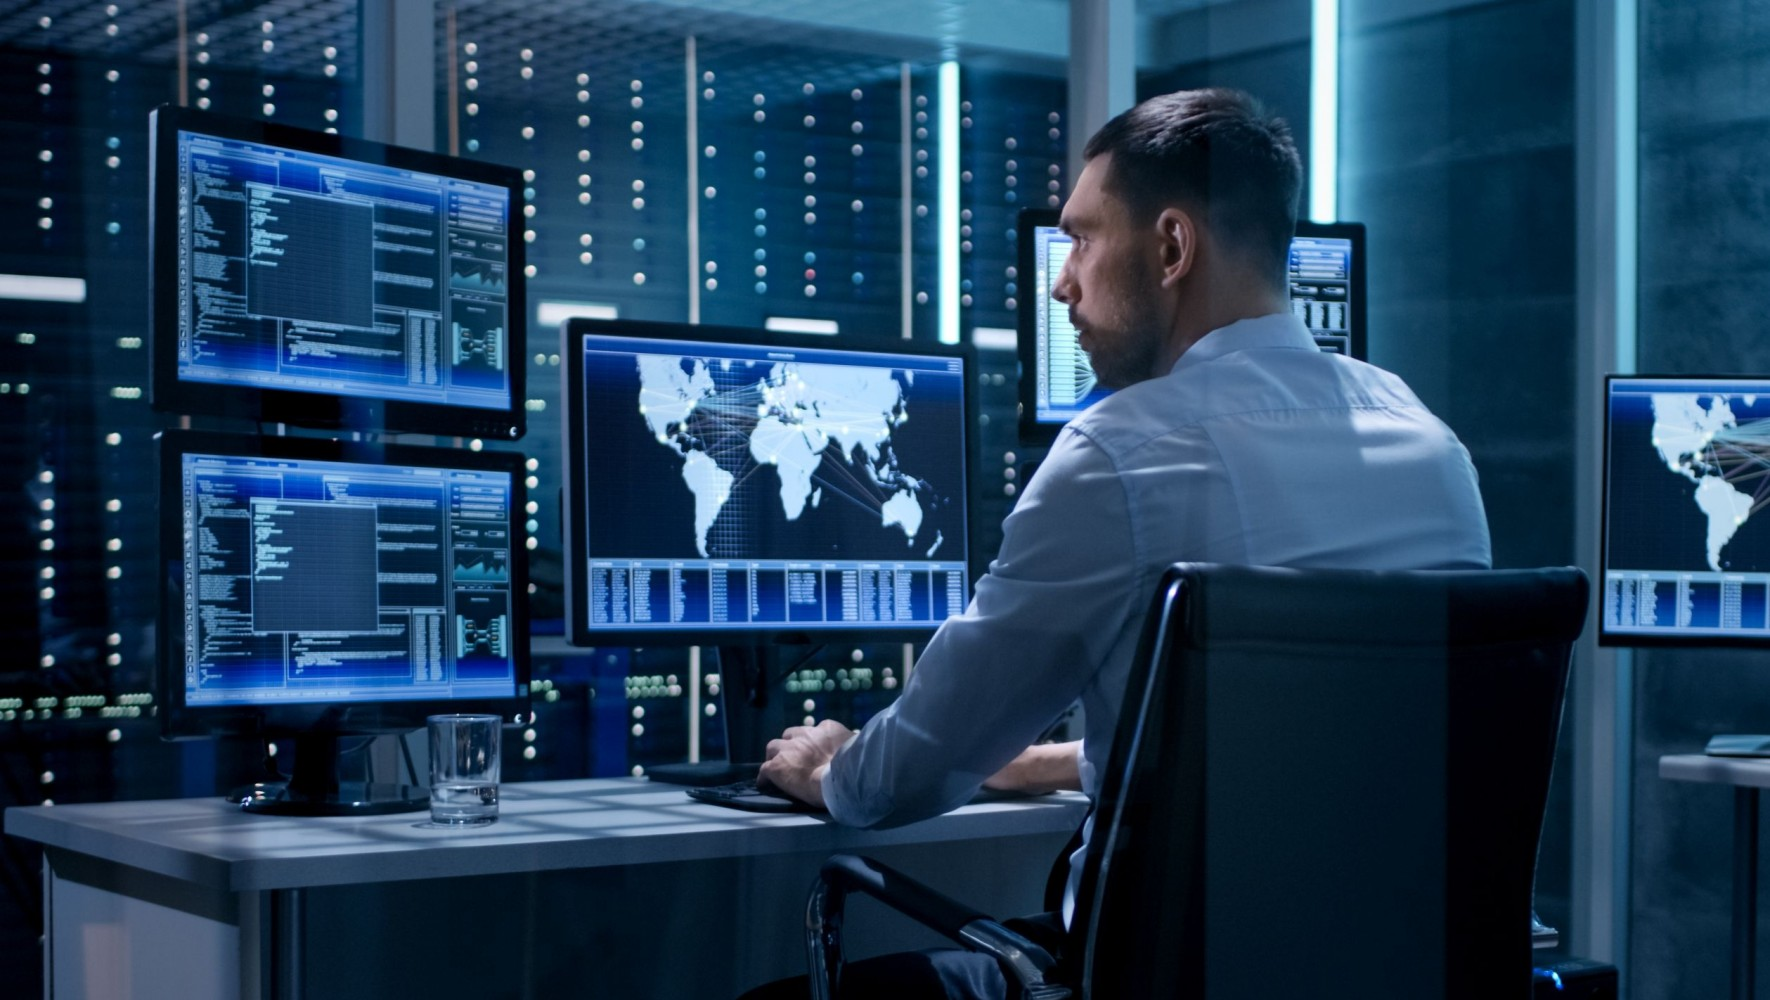 Image result for IT department